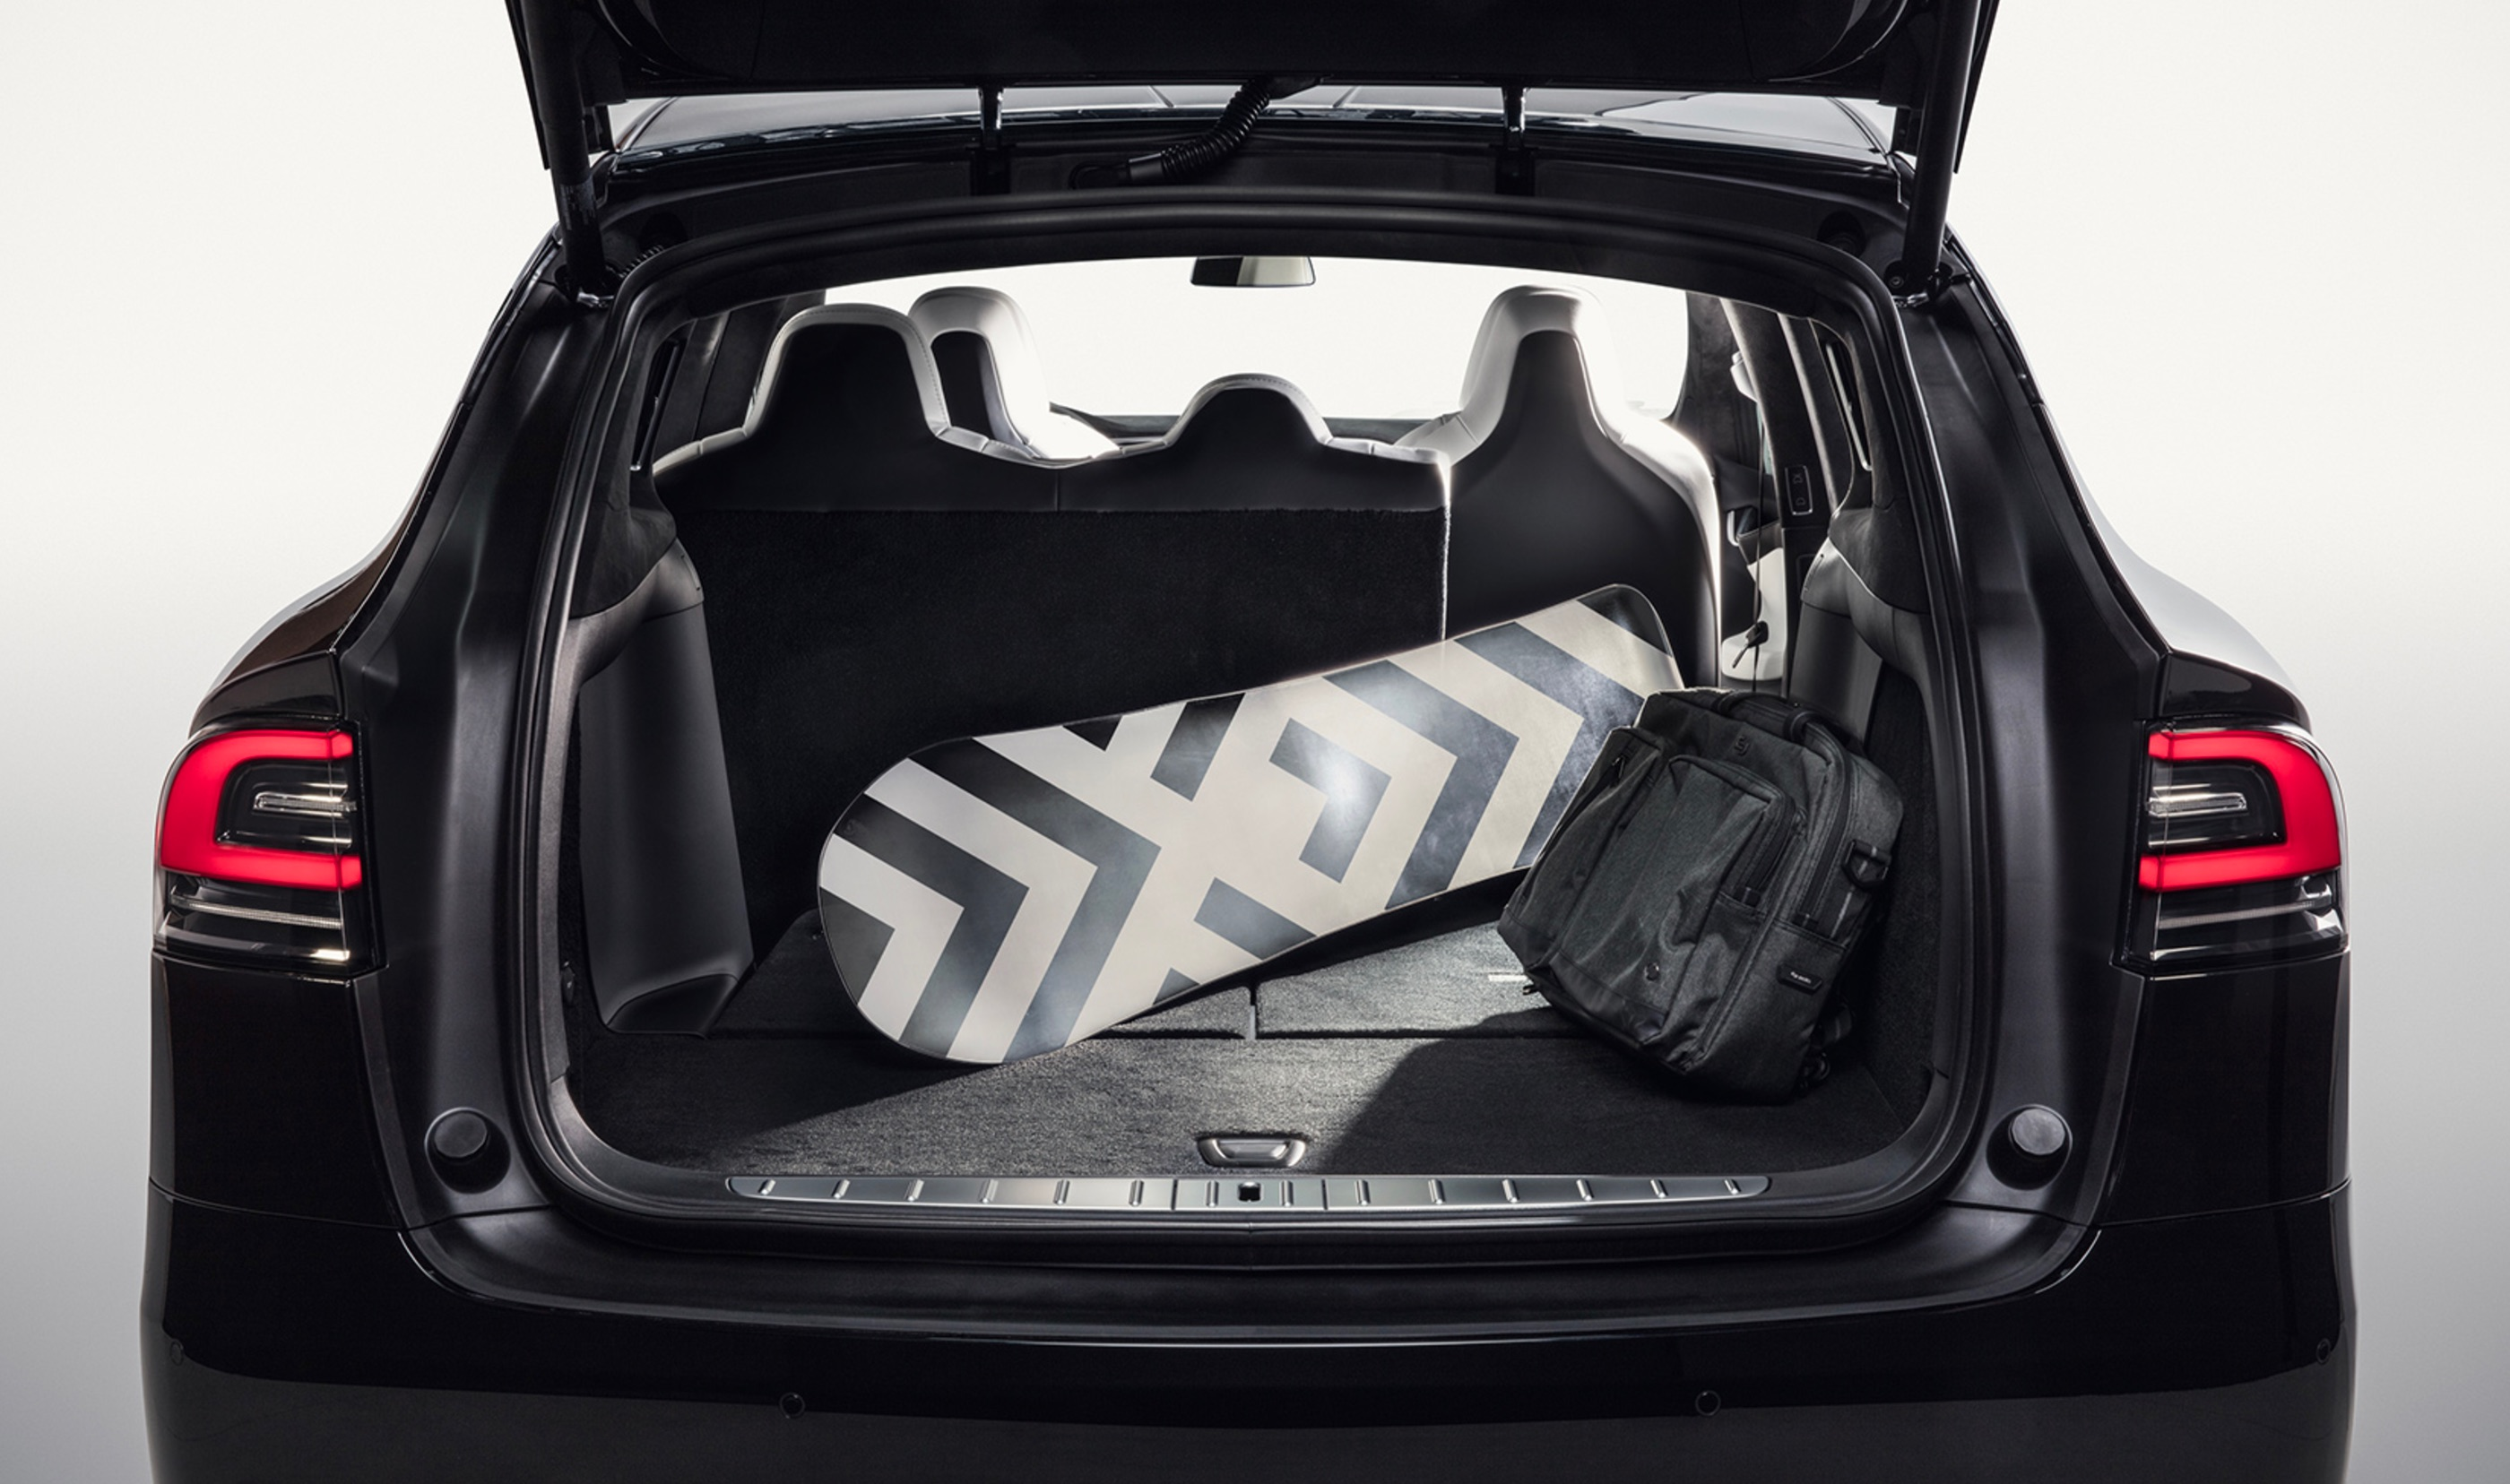 tesla model x in 7 seat configuration finally gets fold flat 2nd row seats automotive the. Black Bedroom Furniture Sets. Home Design Ideas